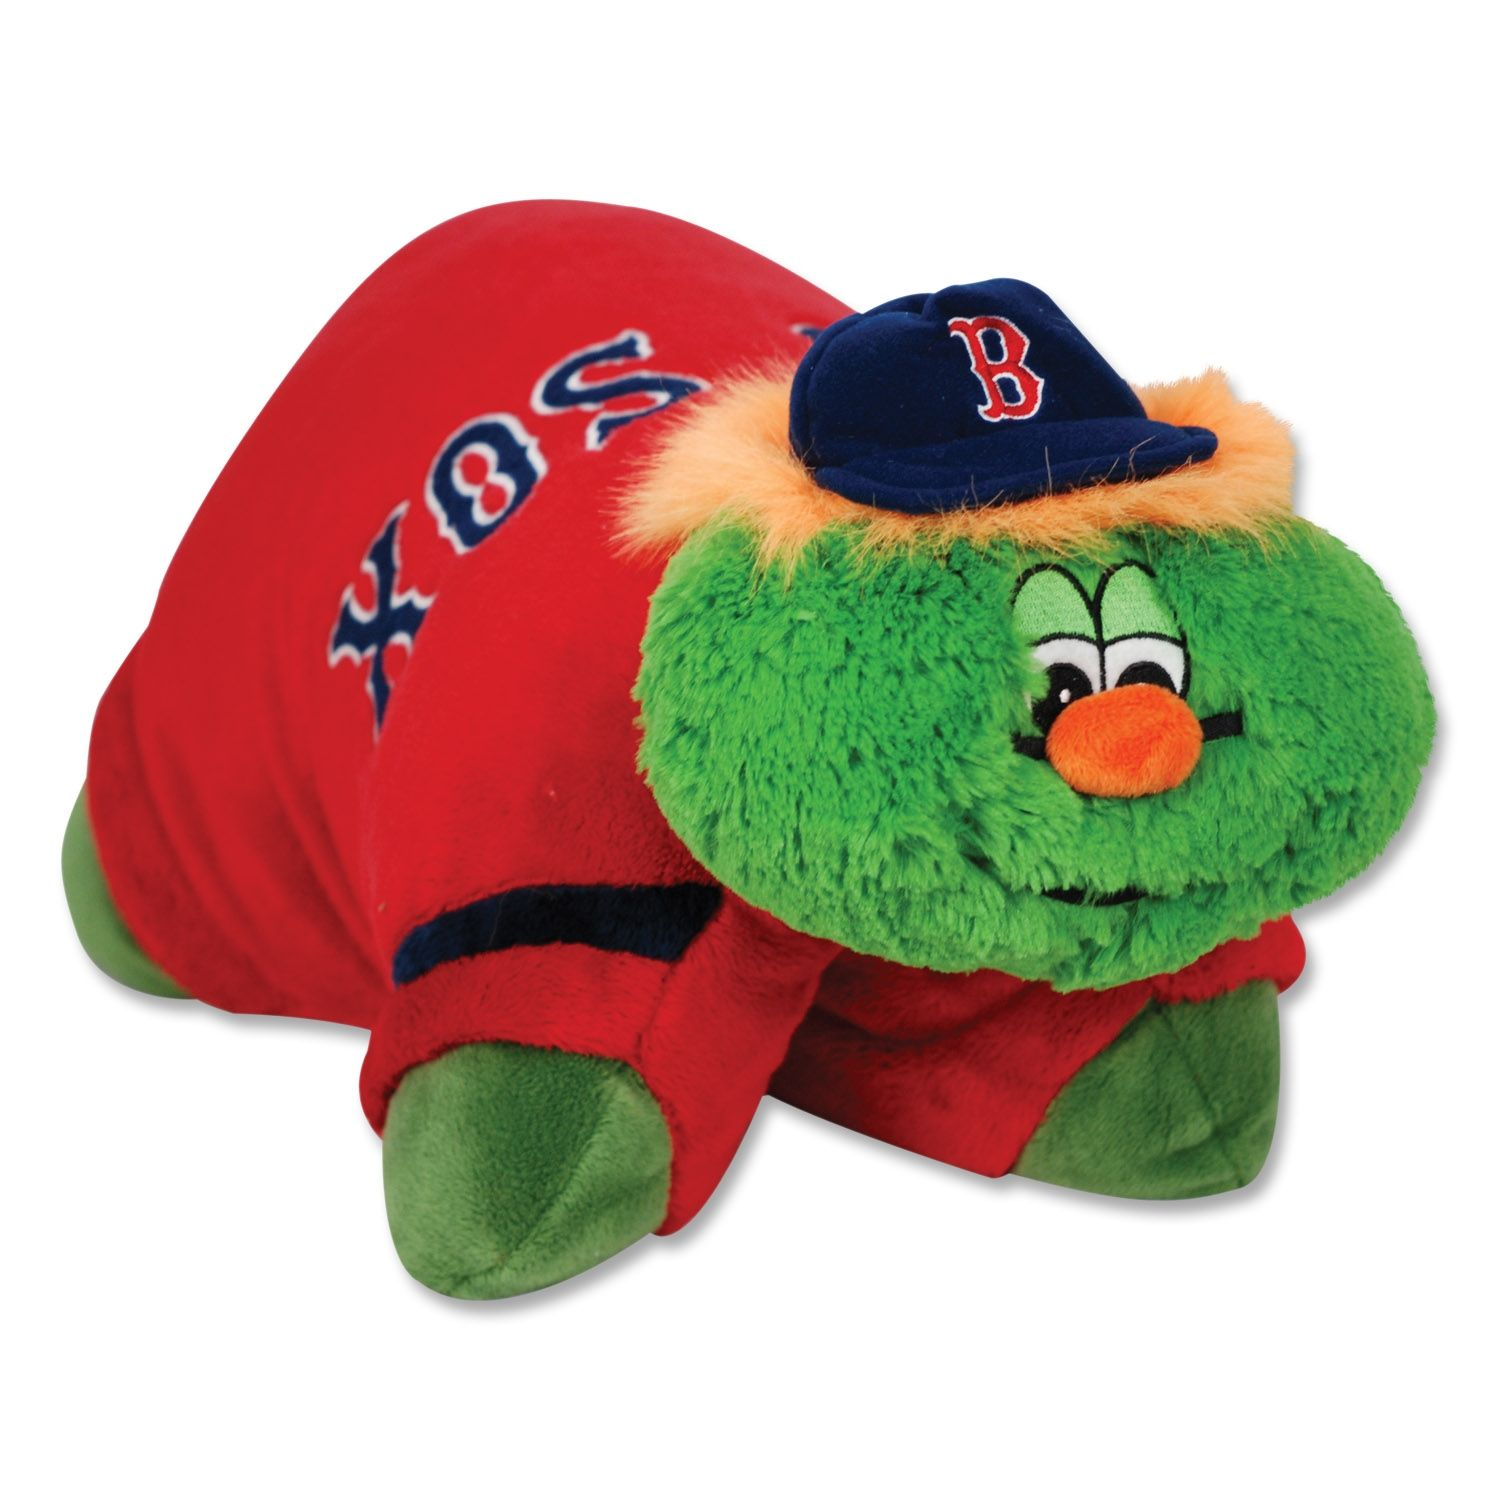 Red Sox Pillow Pet Wally The Green Monster Animal Pillows Green Monsters Plush Animals